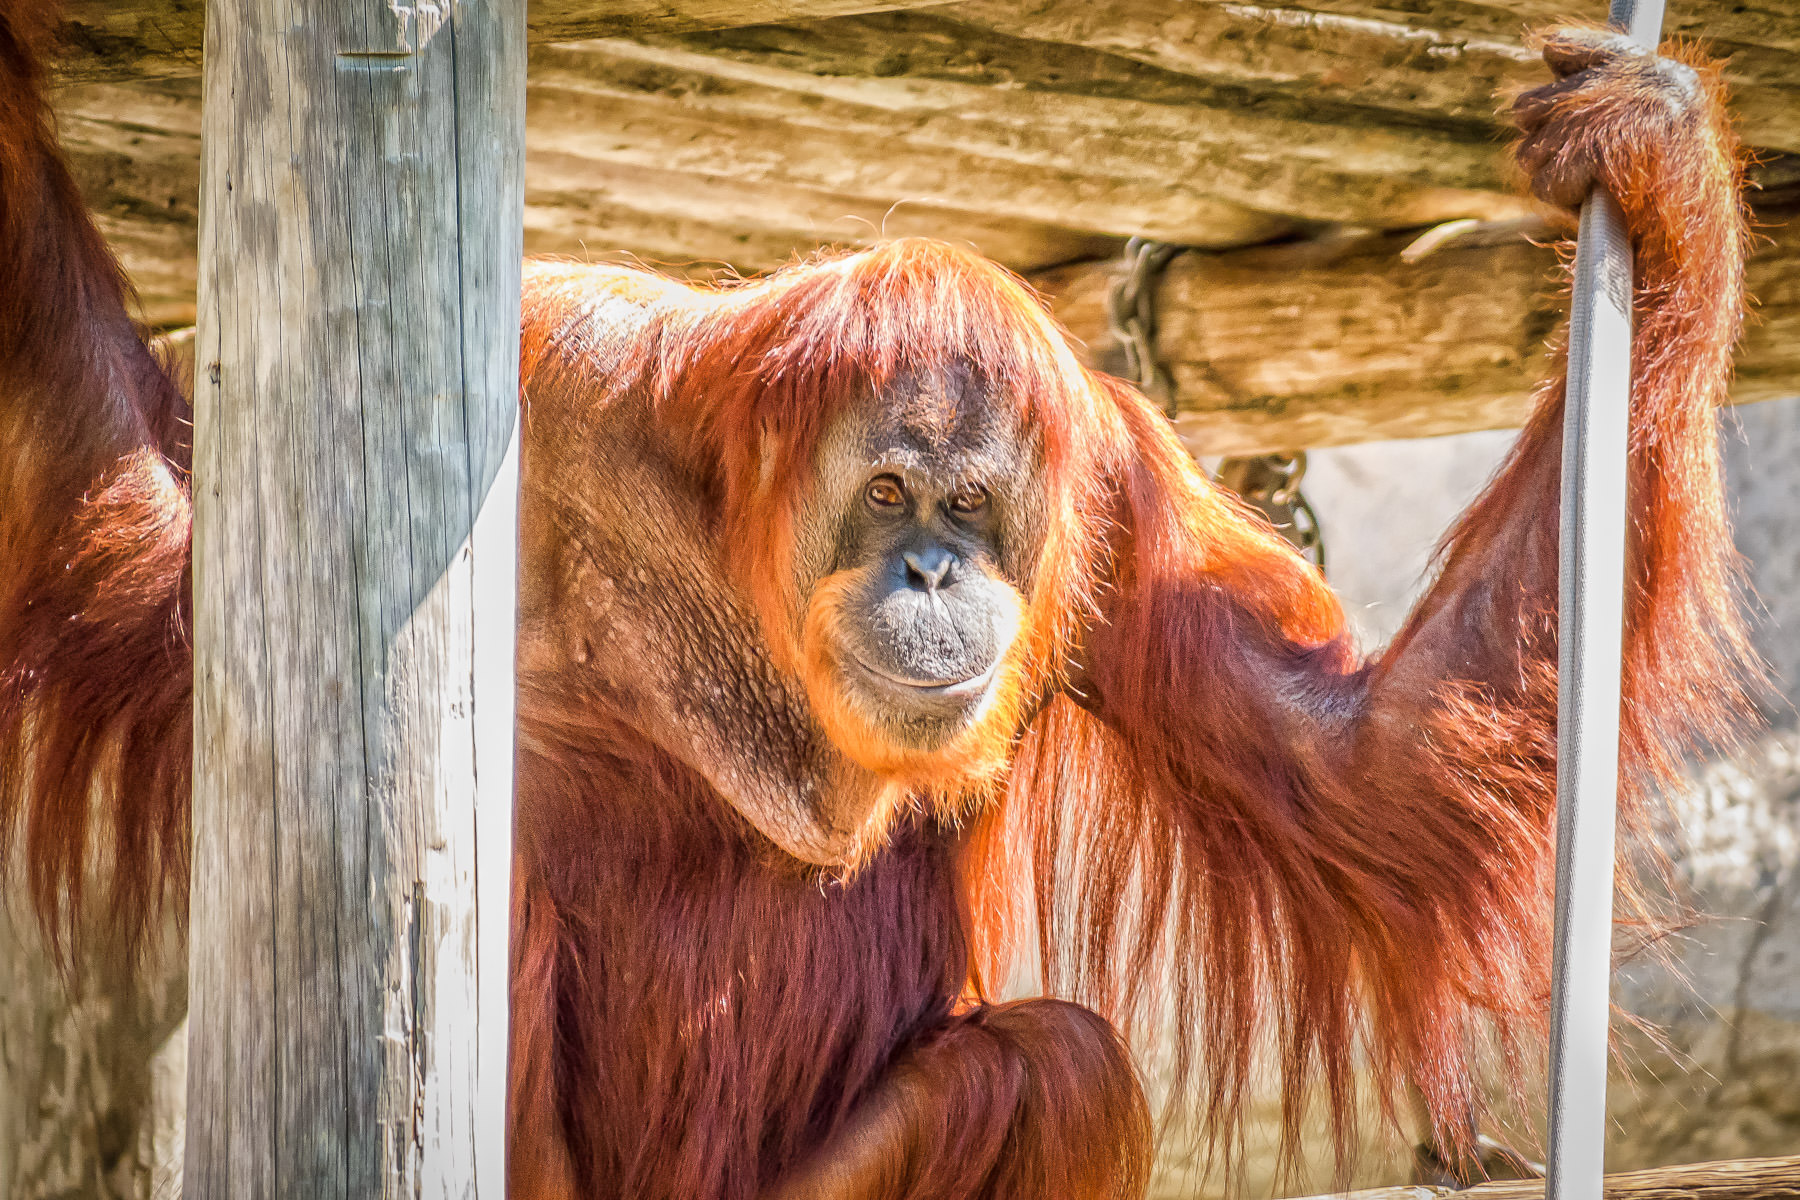 This orangutan at the Fort Worth Zoo seems to have a sly, smirking expression on his face.